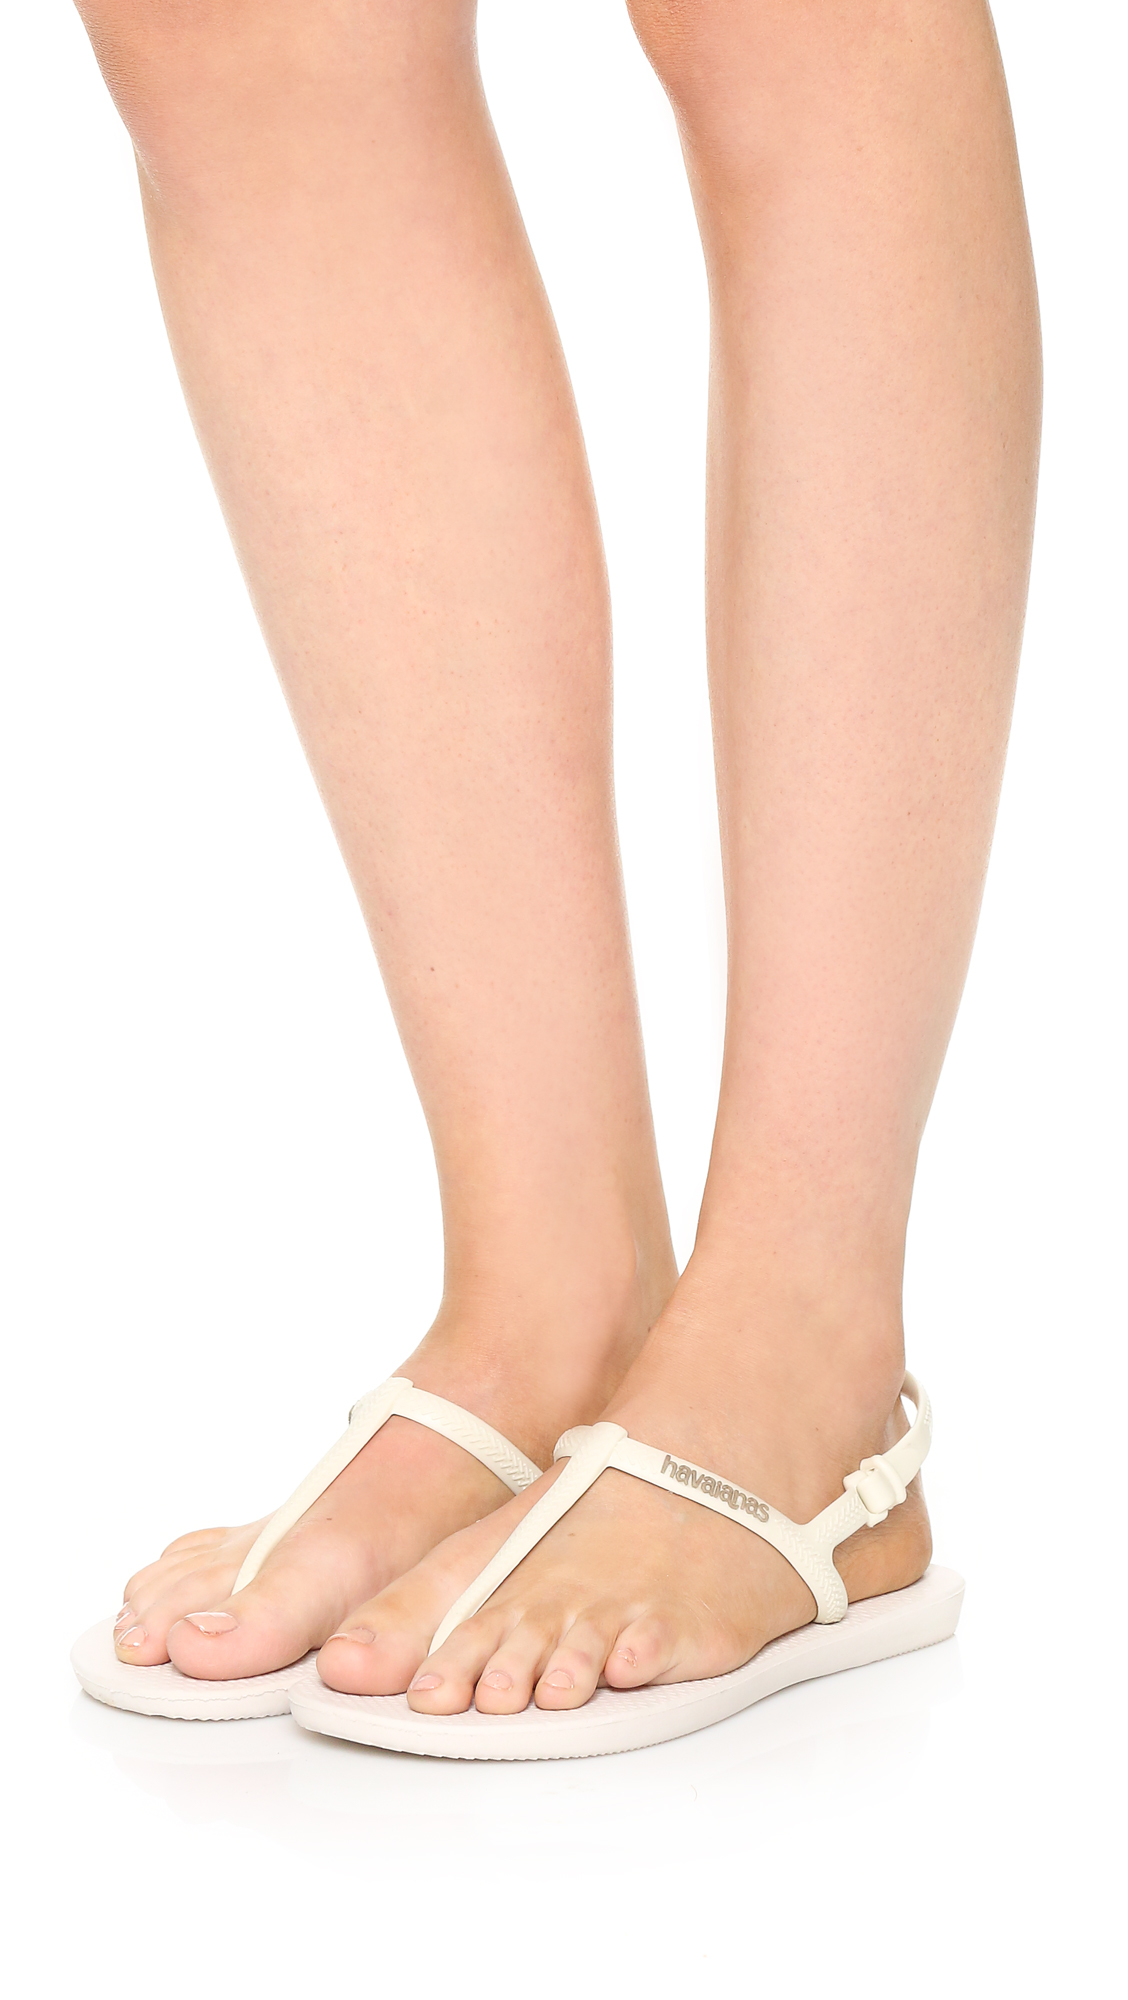 10326d60971a89 Lyst - Havaianas Freedom Sandals in White